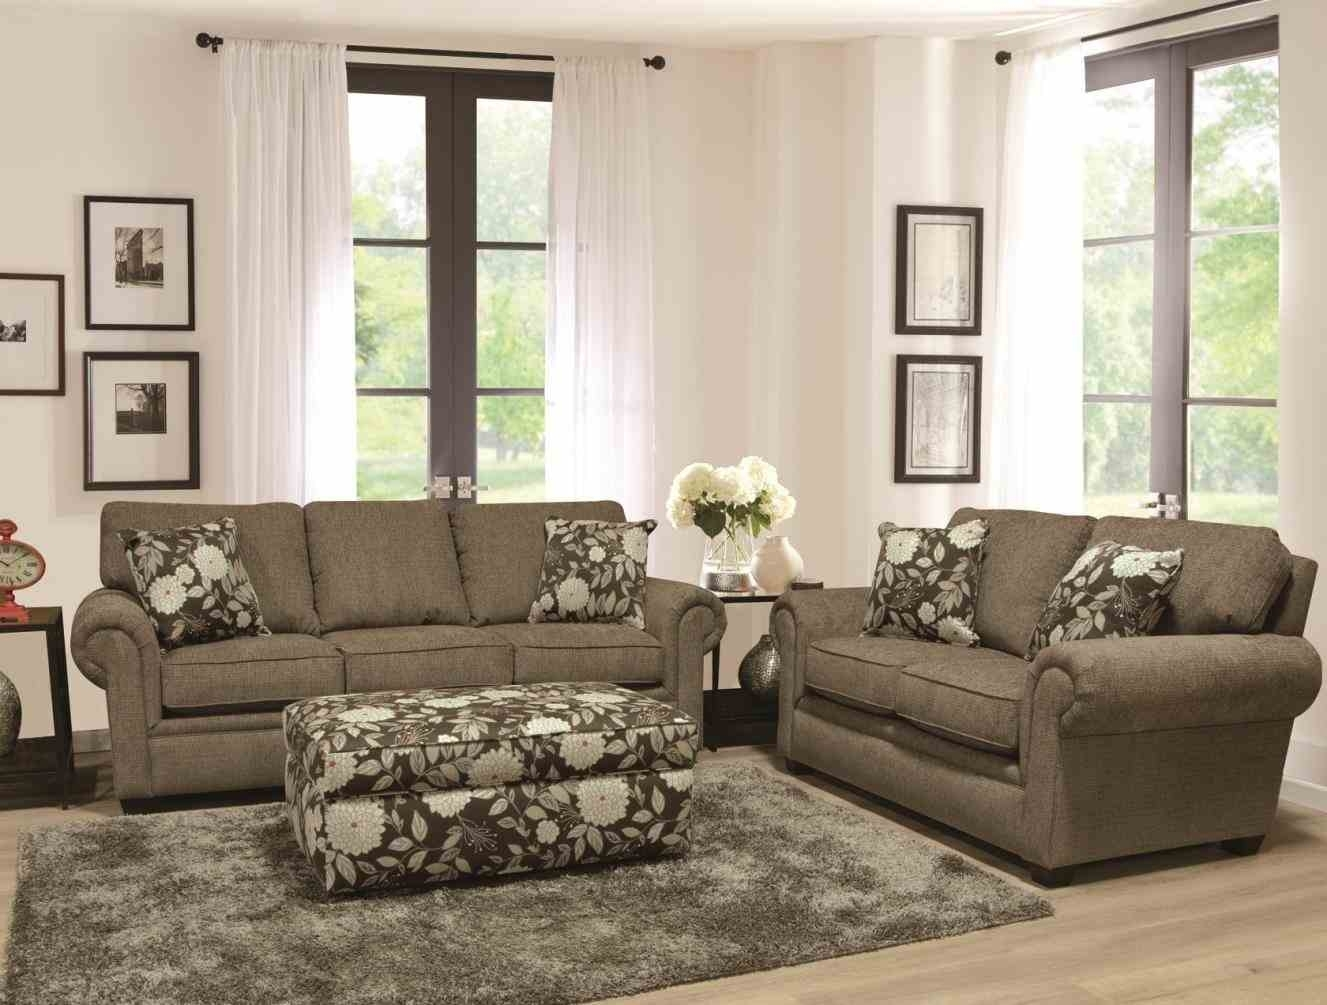 Justin Salem Meyer Des Moines Iowa Wedding And Fabric Sectional With Des Moines Ia Sectional Sofas (Image 6 of 10)